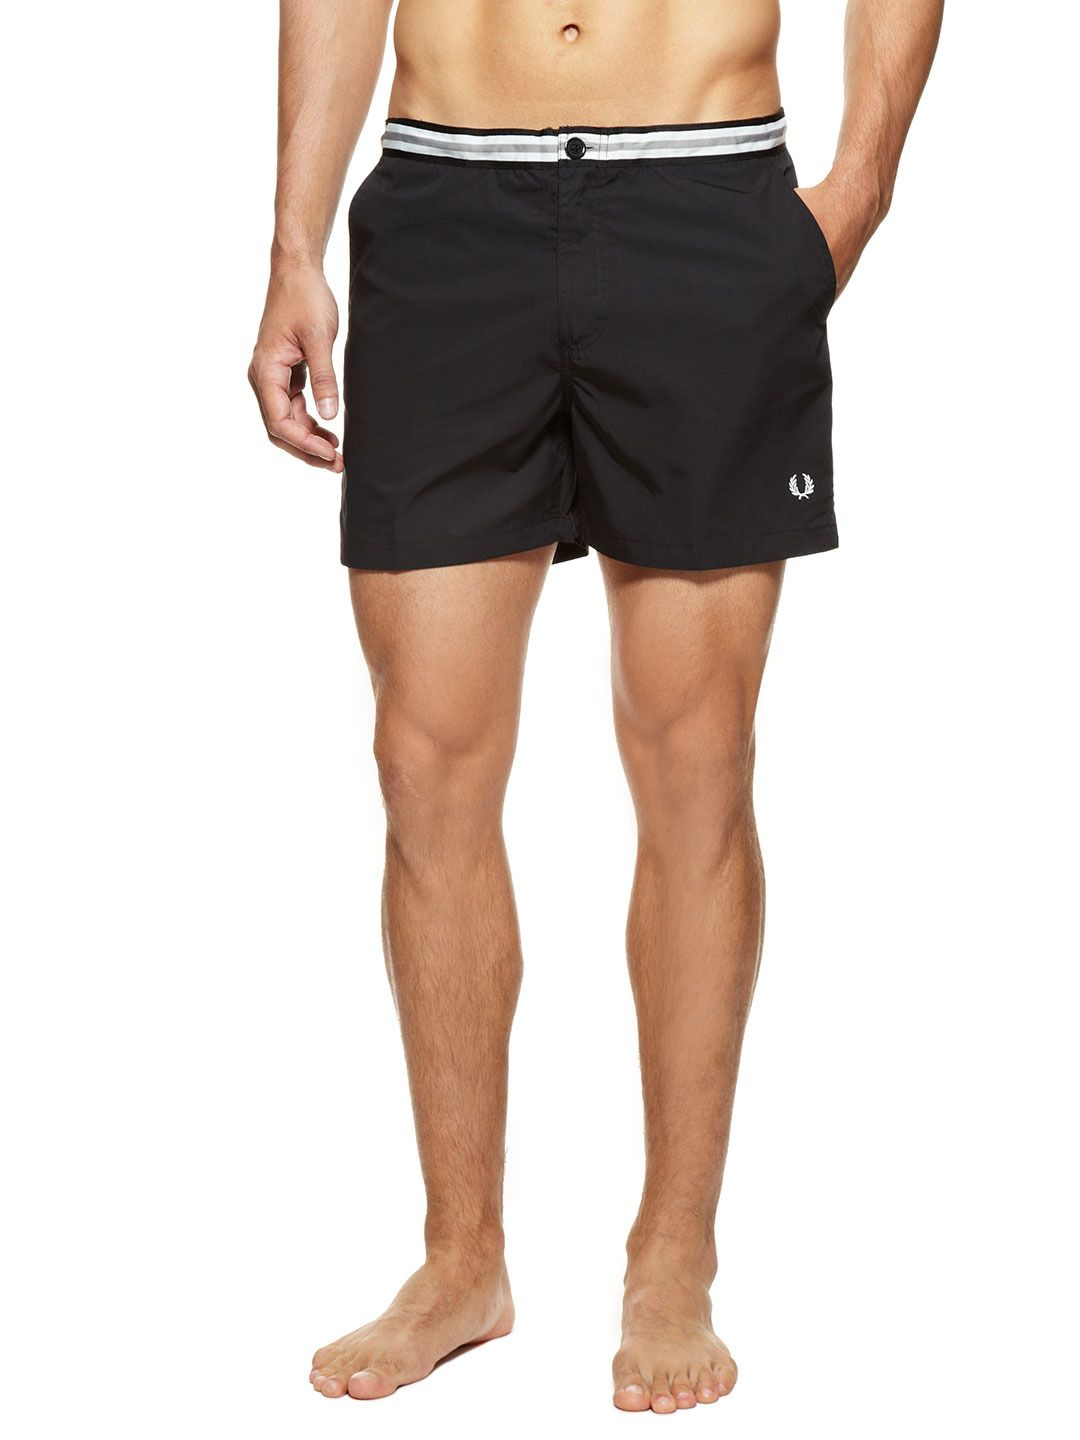 bee5750cf6fcb Swim Shorts by Fred Perry at Gilt | Men's Apparel | Swim shorts ...